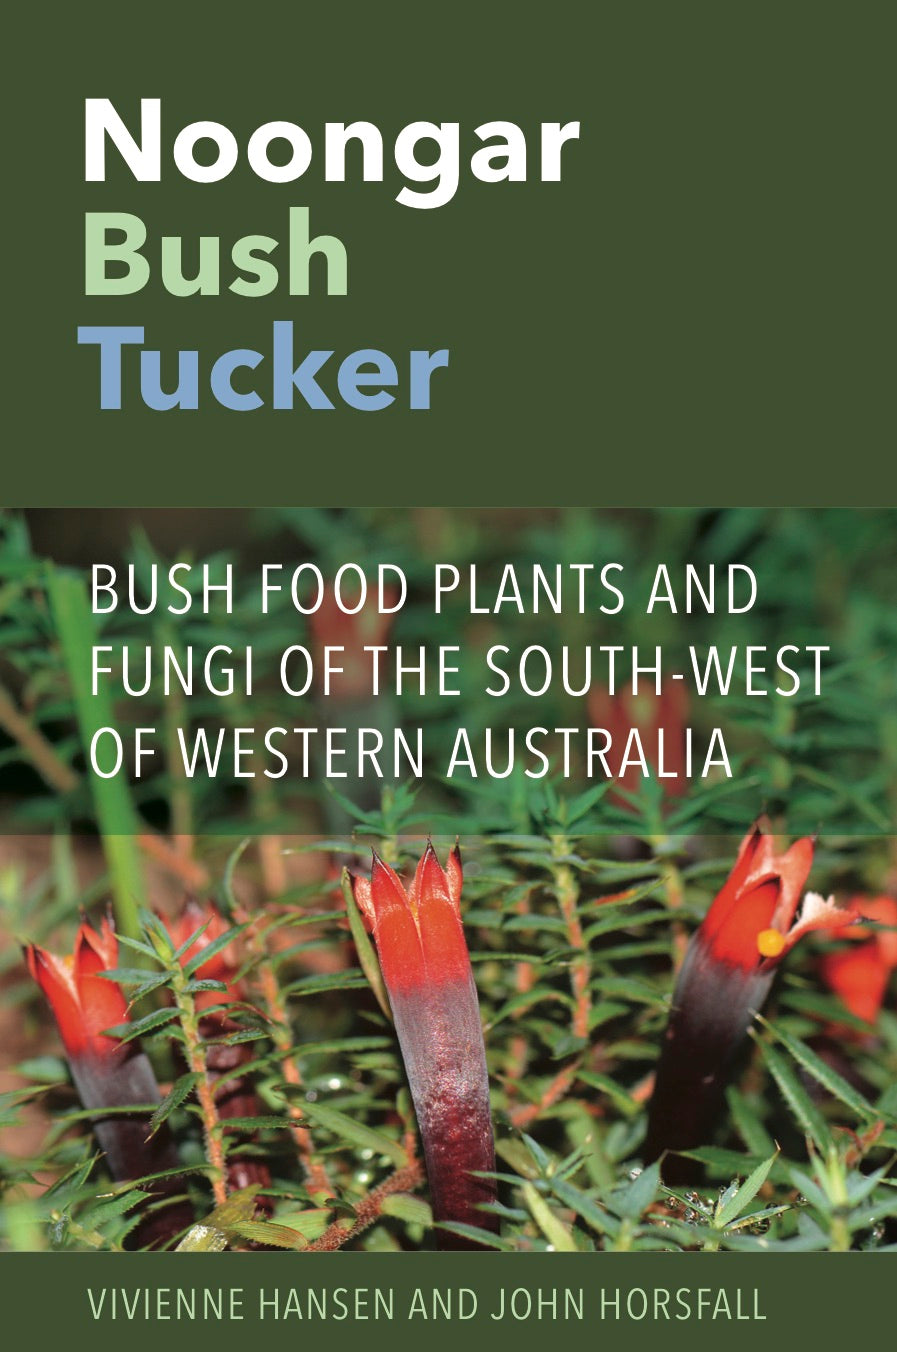 Noongar Bush Tucker